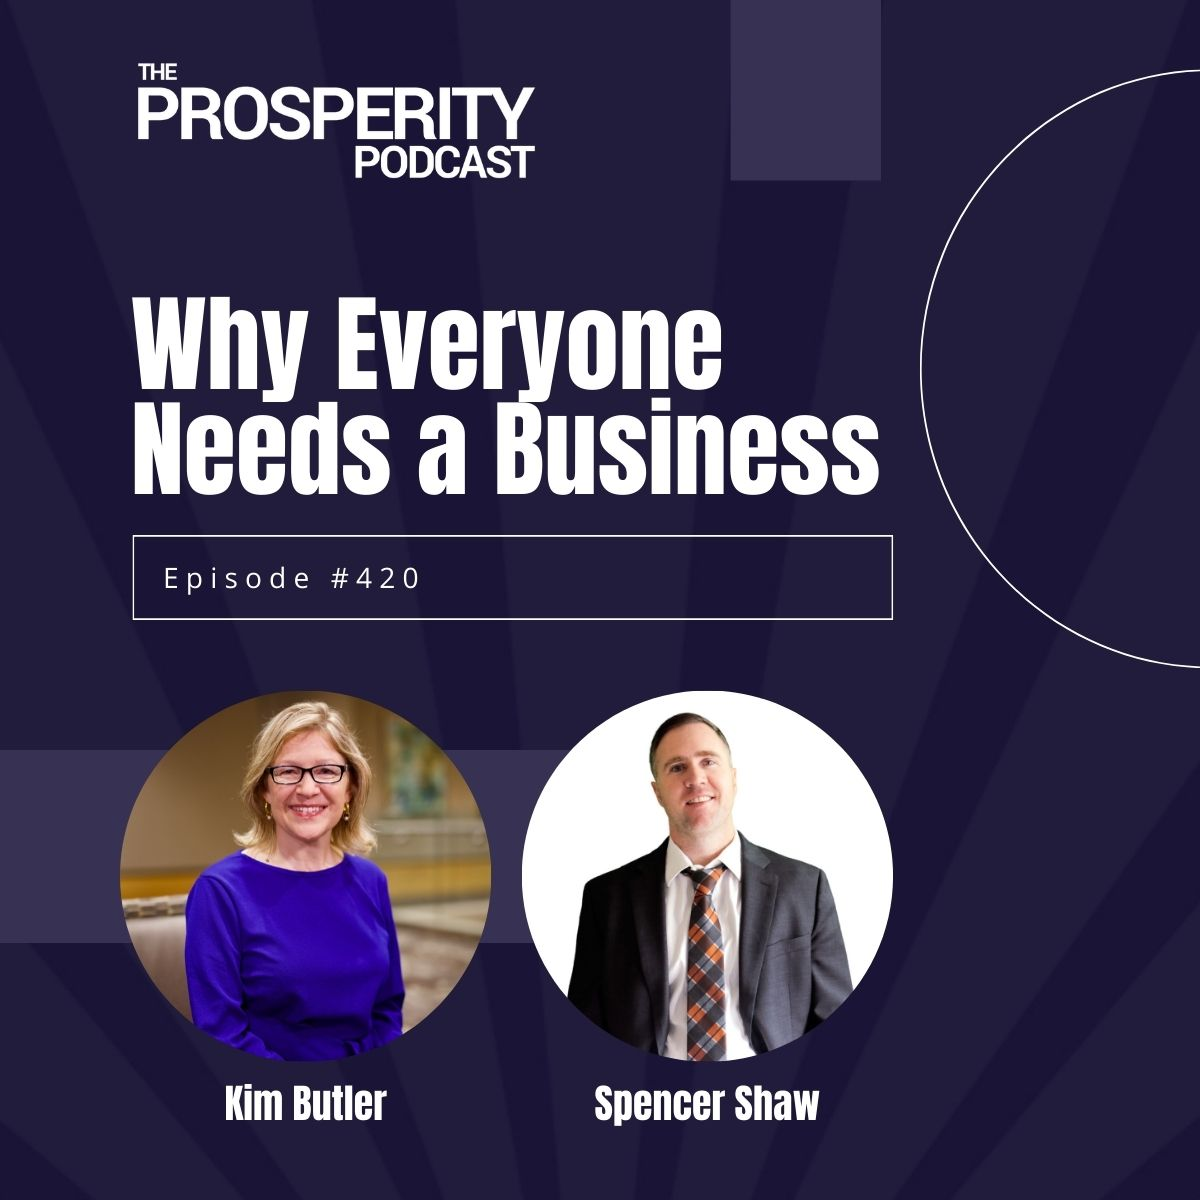 Why Everyone Needs a Business